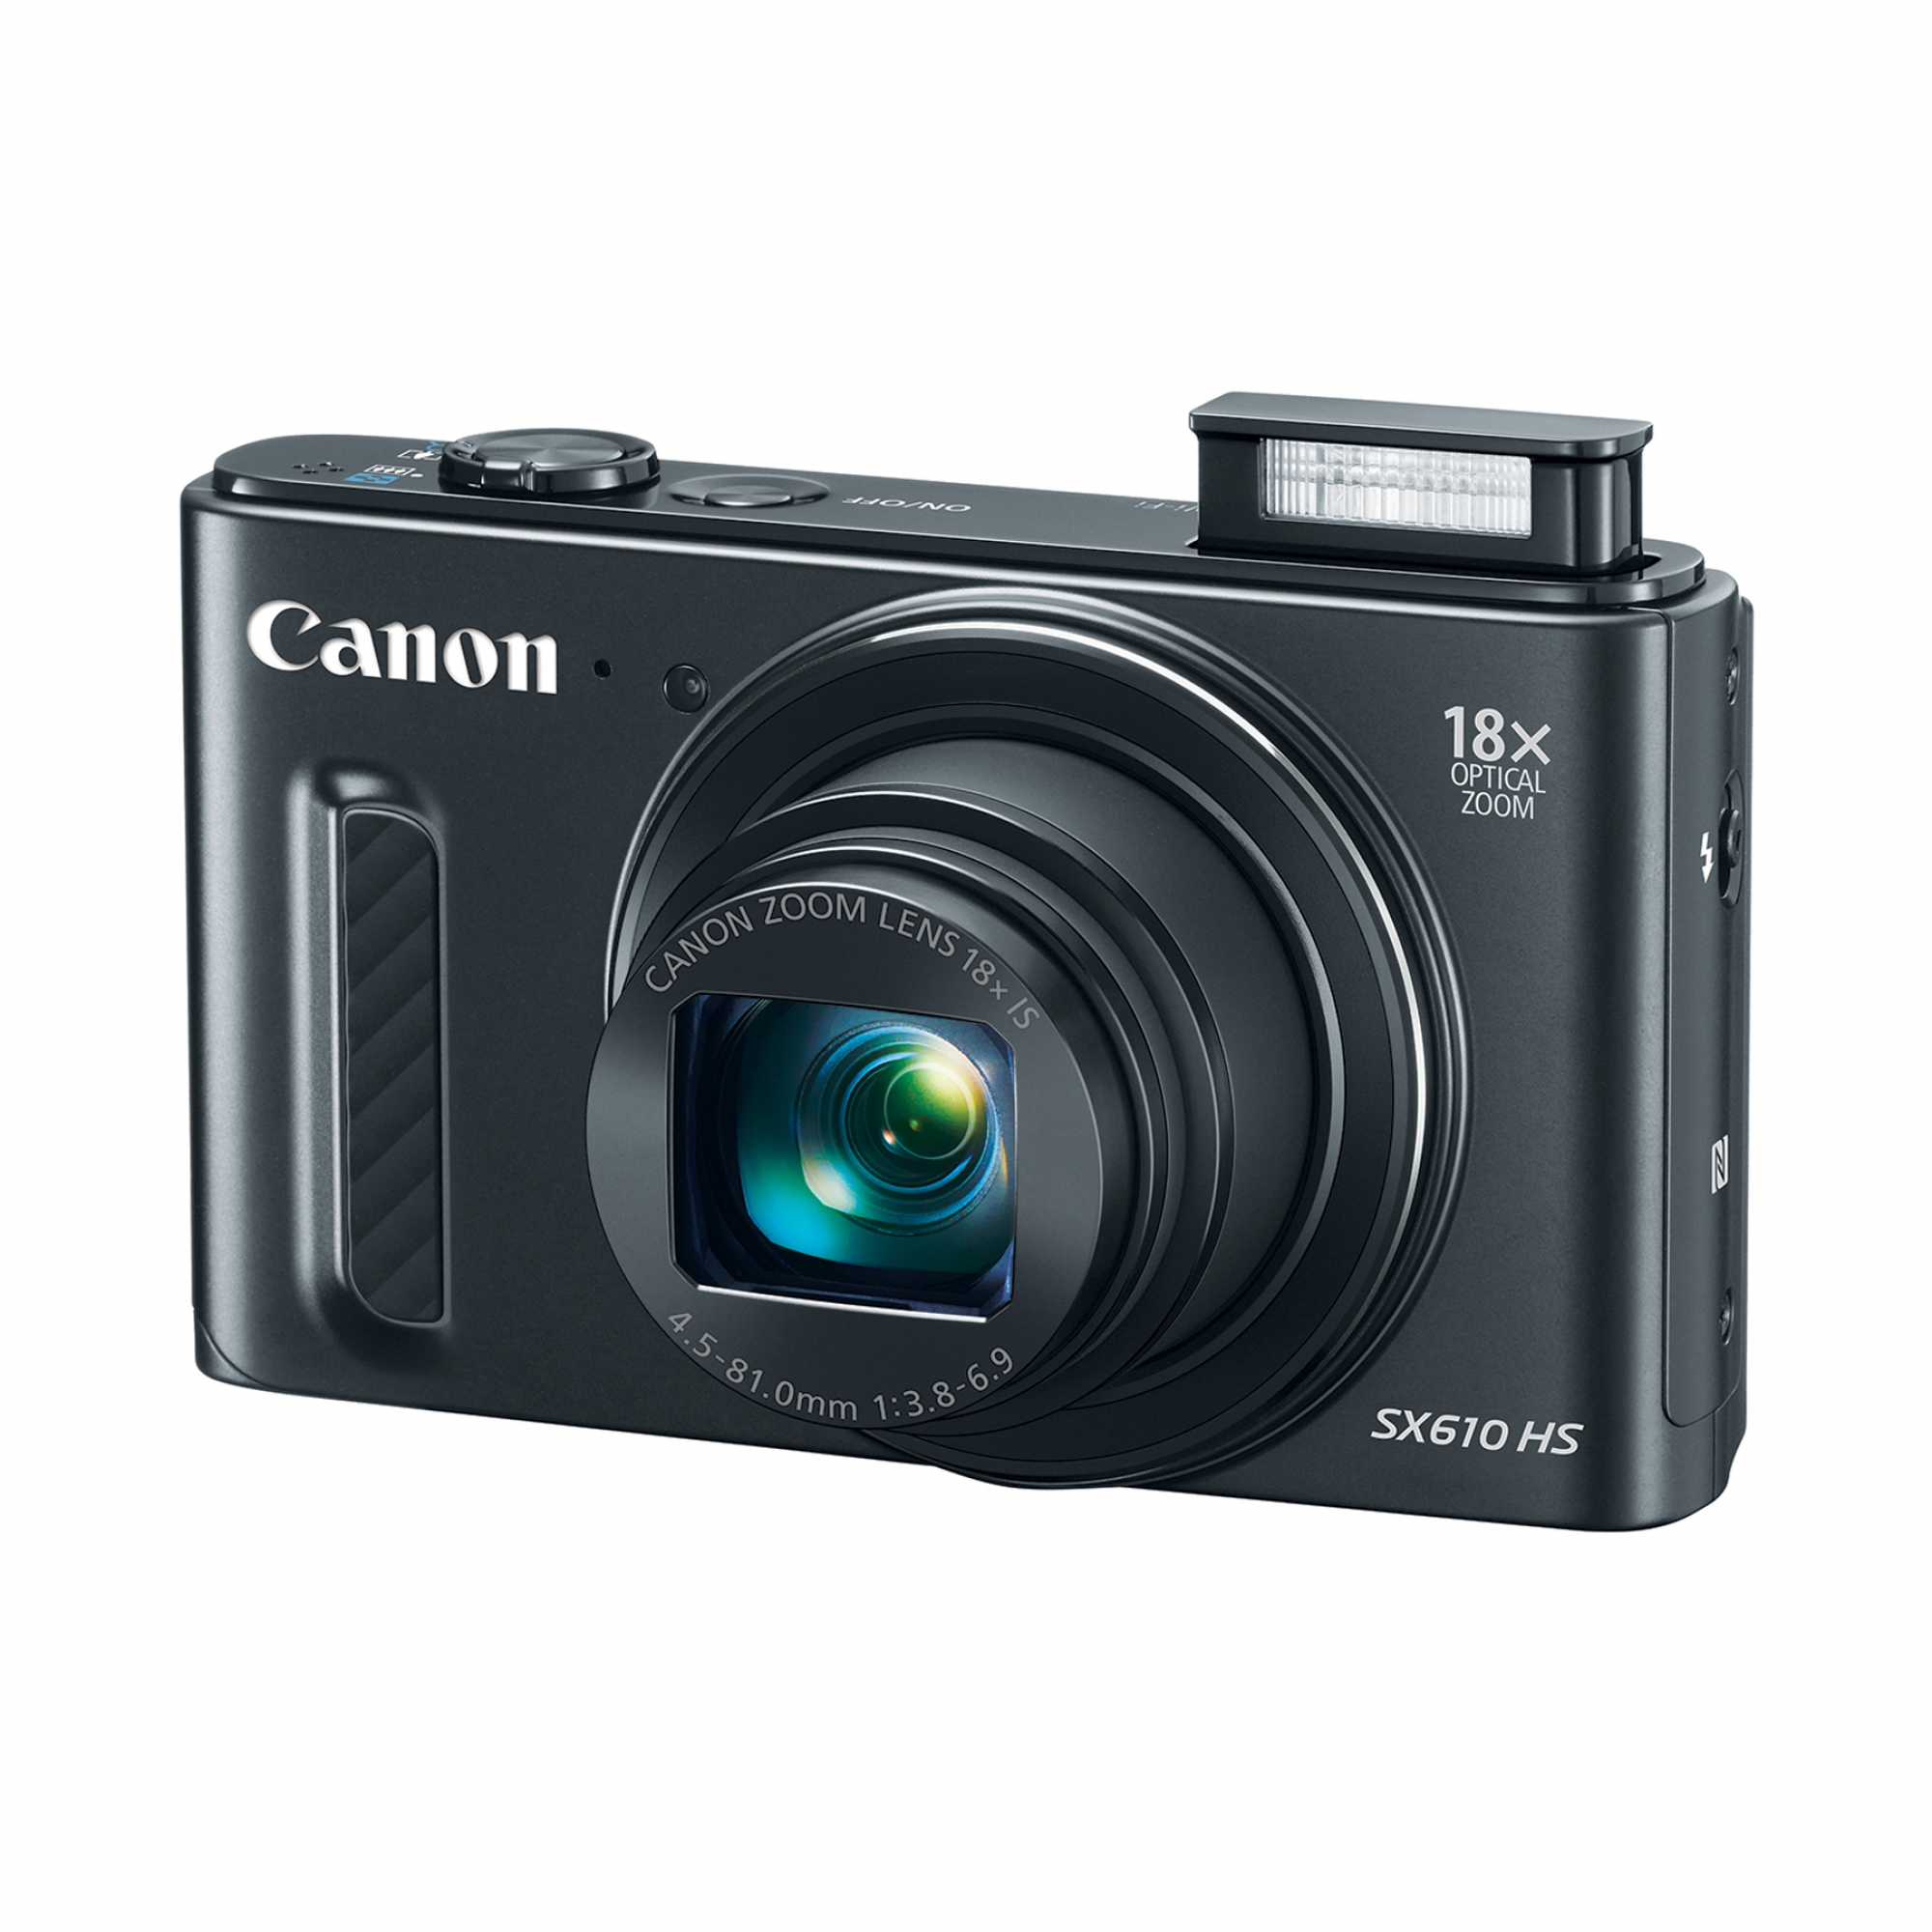 Canon PowerShot SX610 HS 20.2MP Digital Camera with 18x Optical Zoom and 3.0-inch LCD